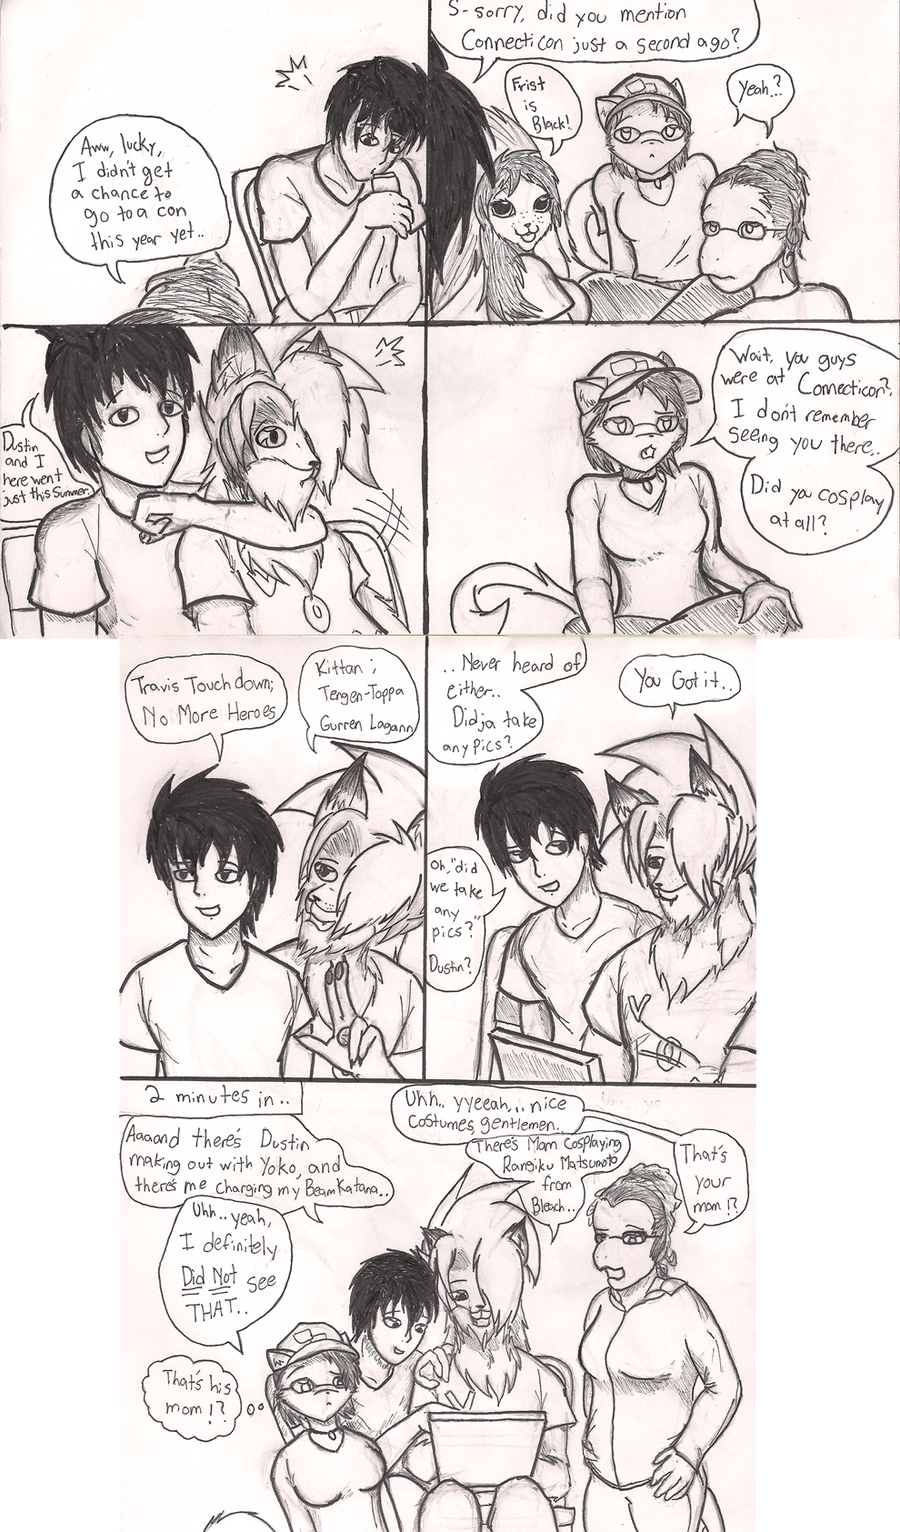 Comics and Artstuffs by Frist: Bol+-Wicked (+) - Page 6 First_impression_by_frist44-d32mky1